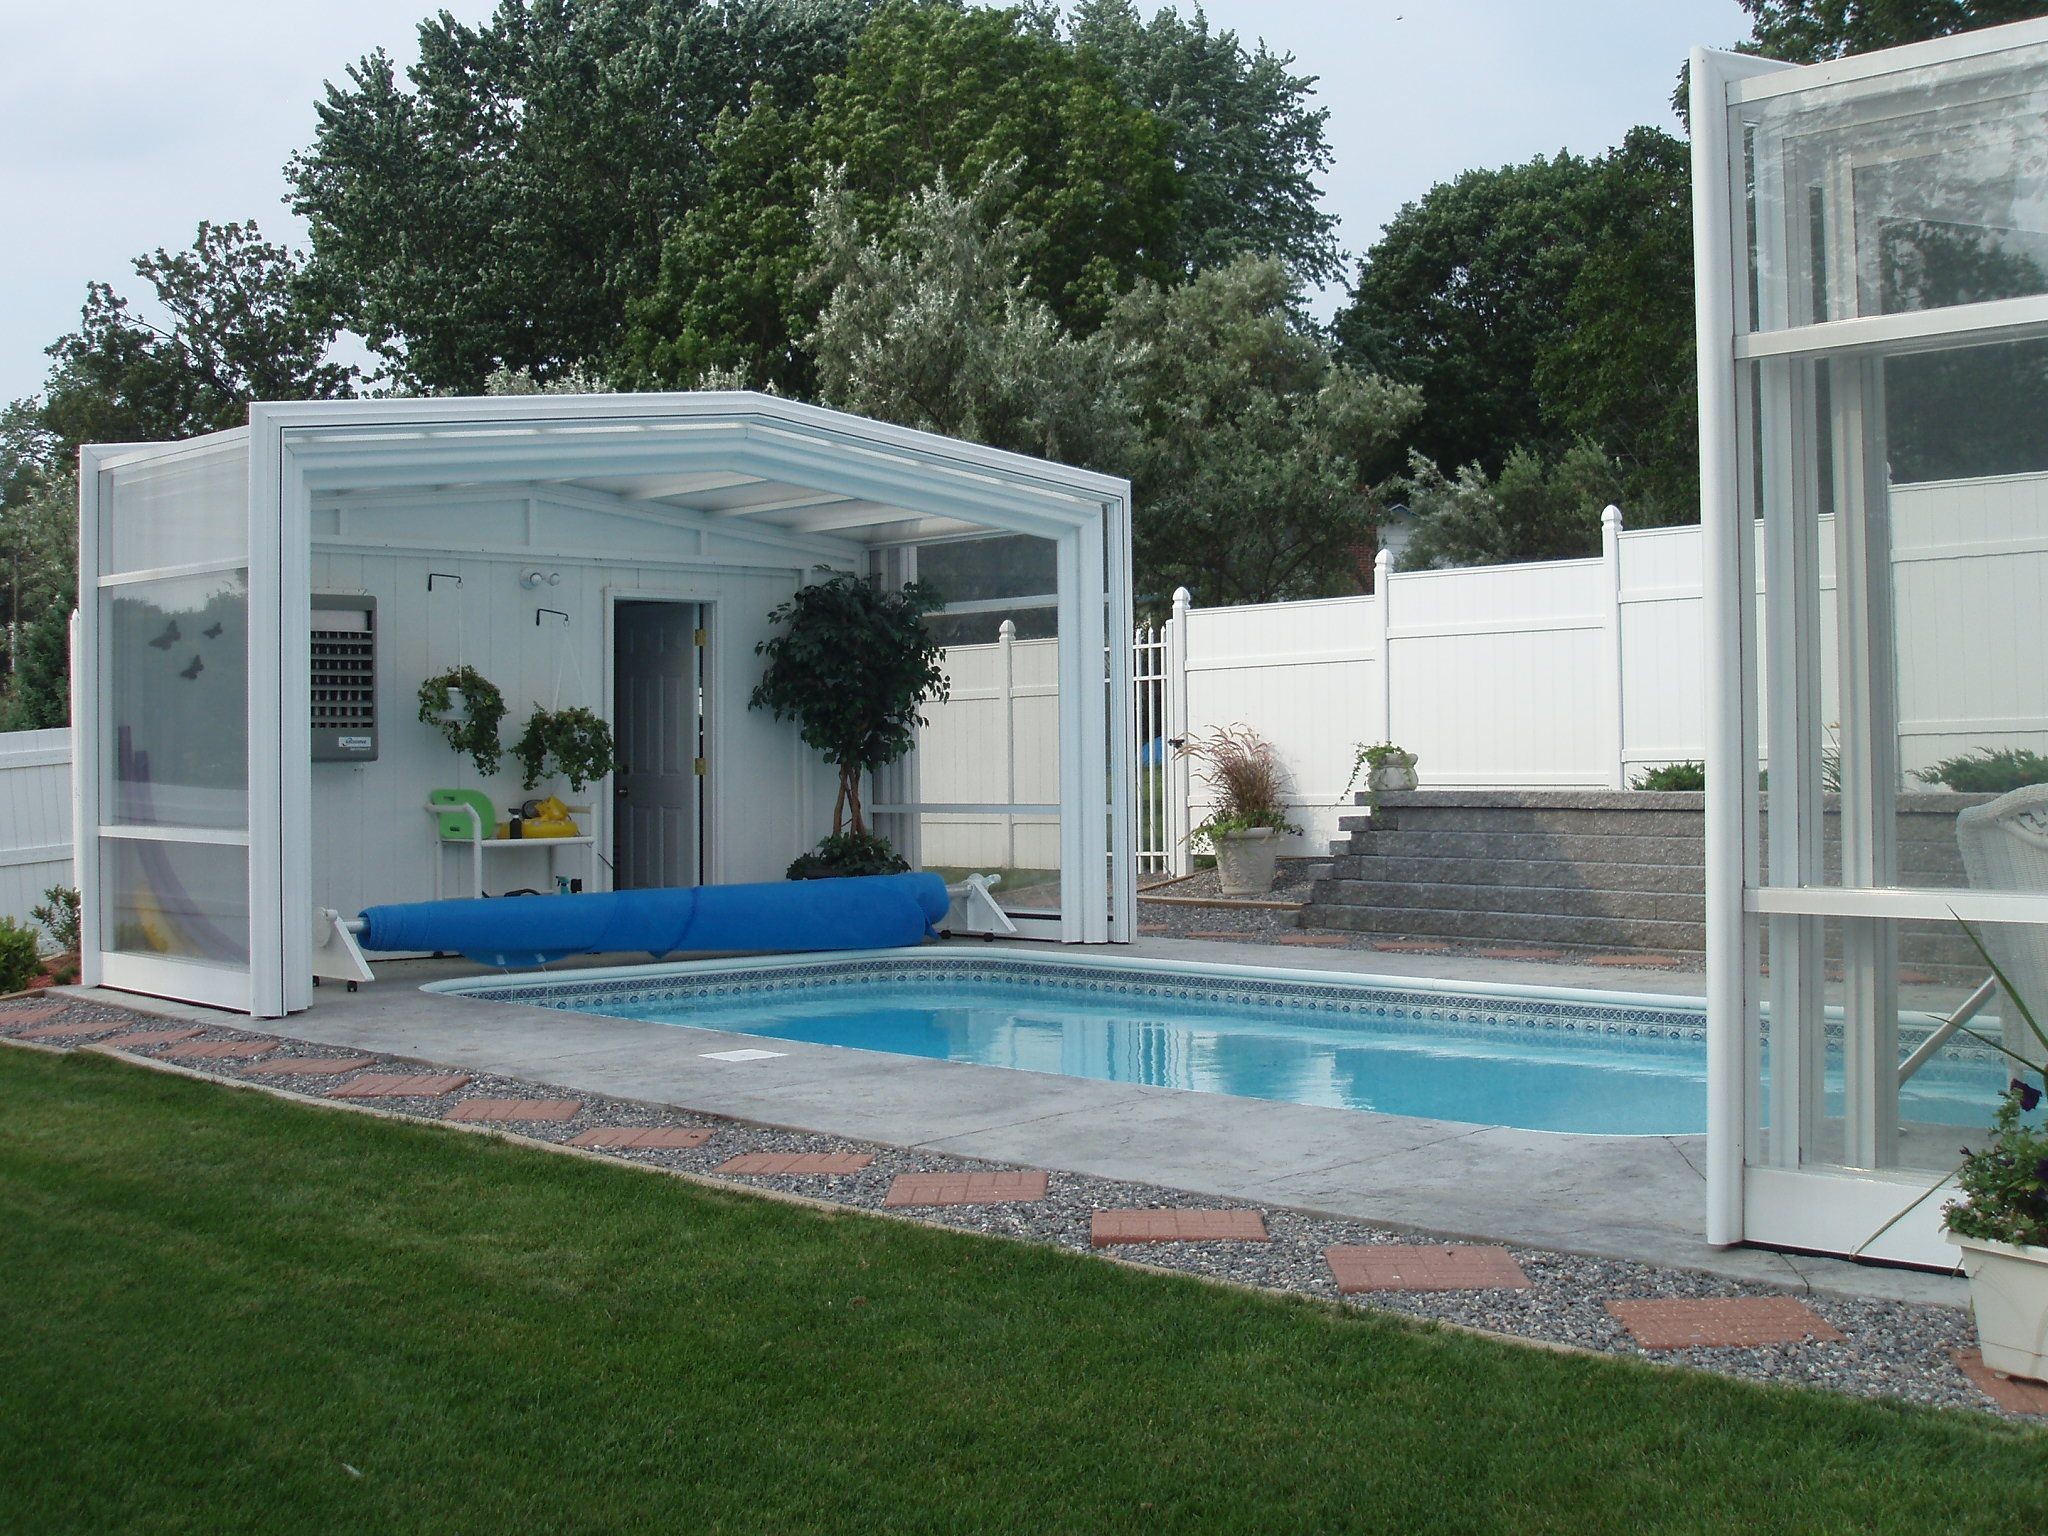 Superb Retractable Roofs For Pools | Retractable Roofs, Enclosed Swimming Pools, Swimming  Pool Covers,